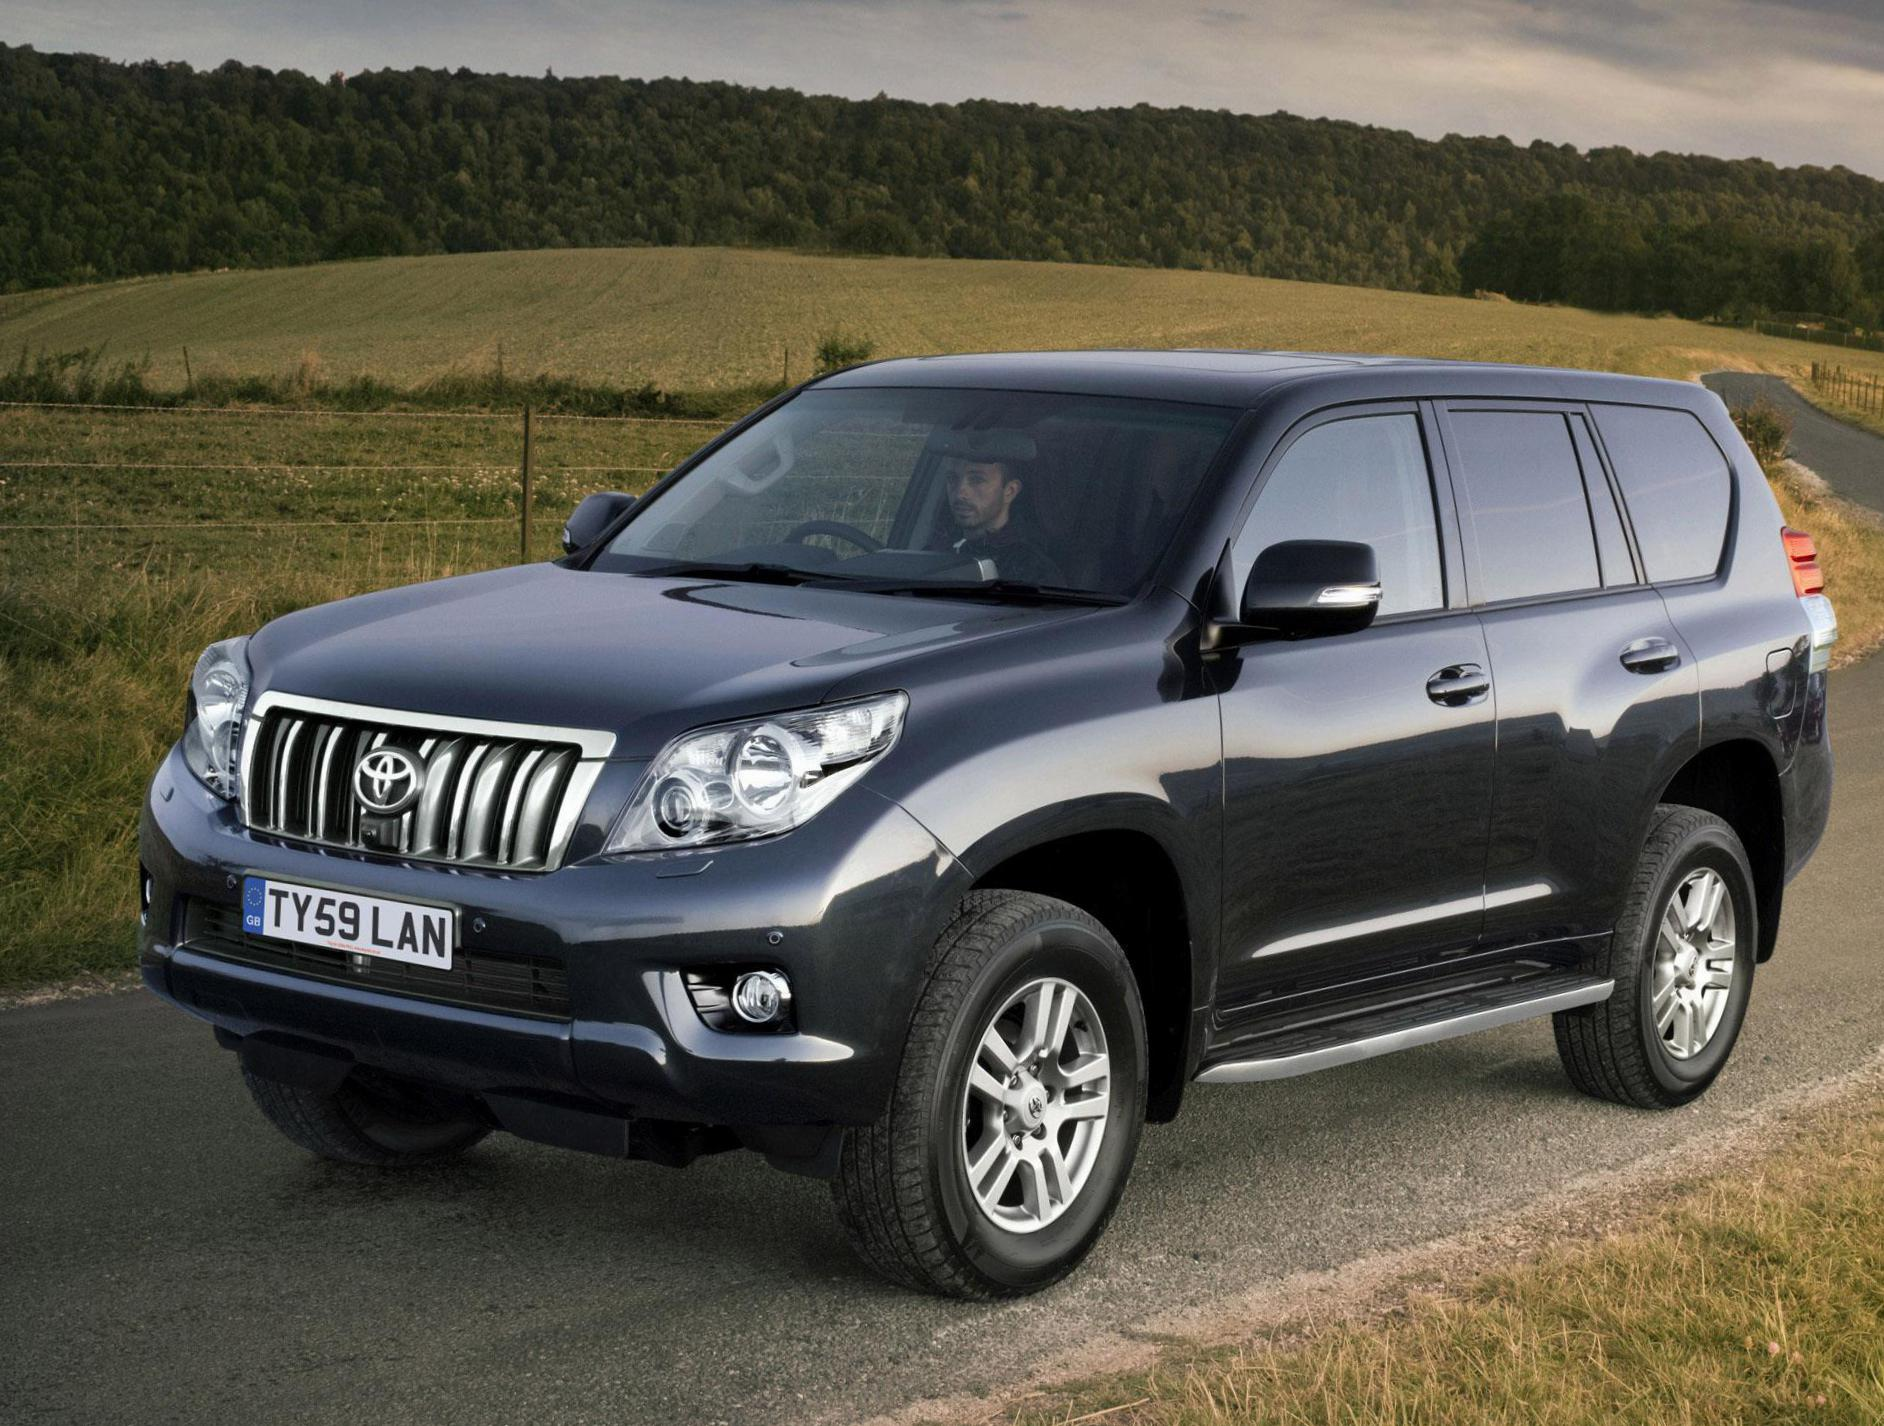 Land Cruiser Prado 150 Toyota prices 2009